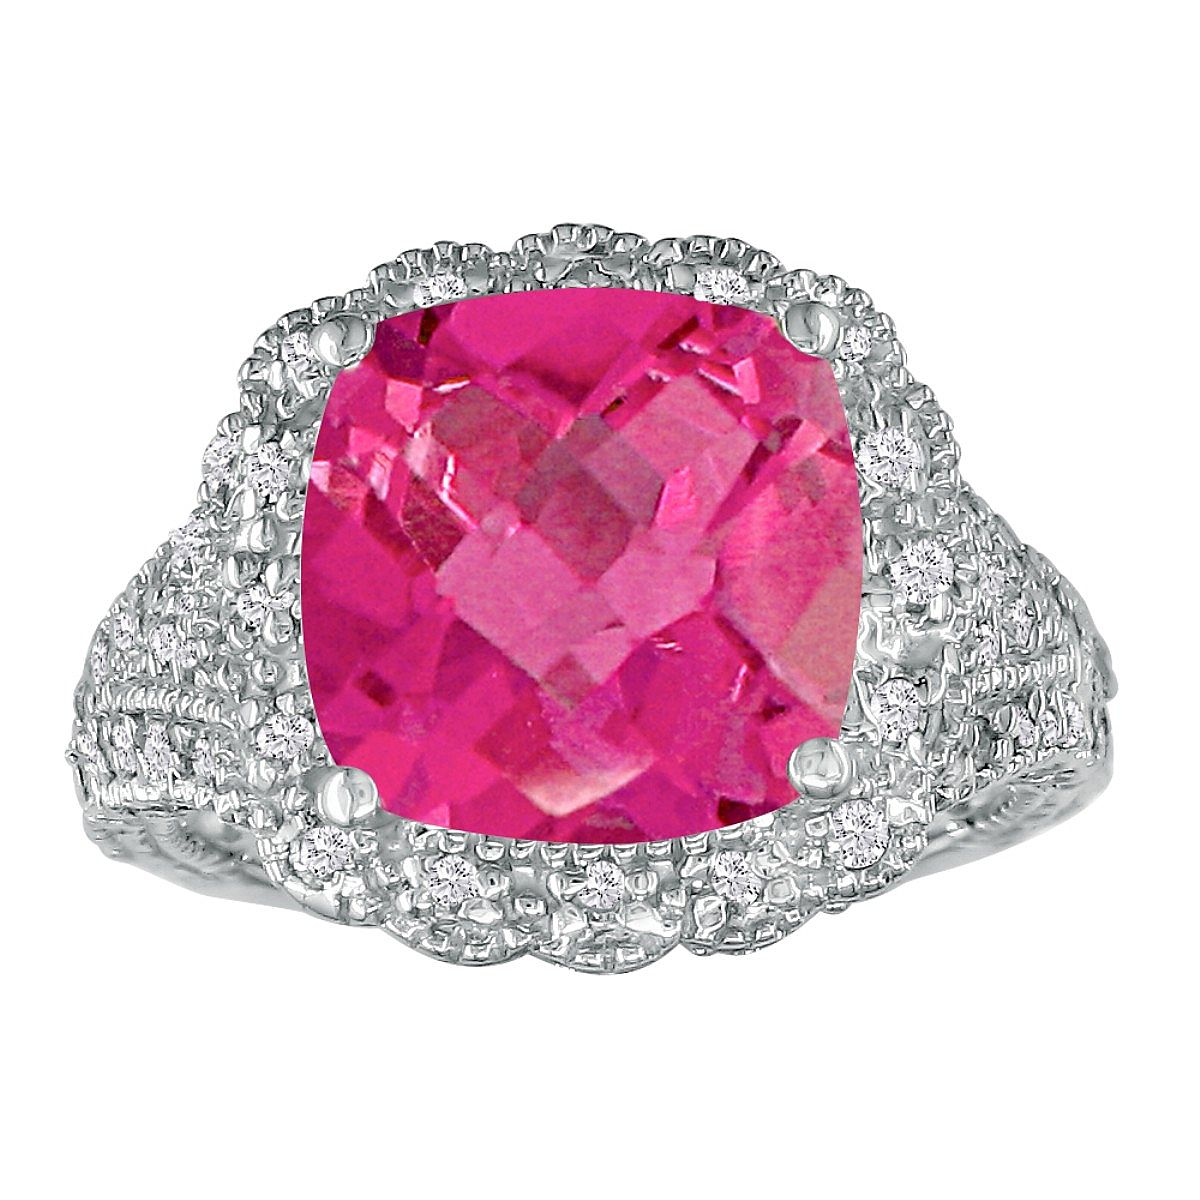 Stylish 4 1/2ct Pink Topaz and Diamond Ring in 14k White Gold ...